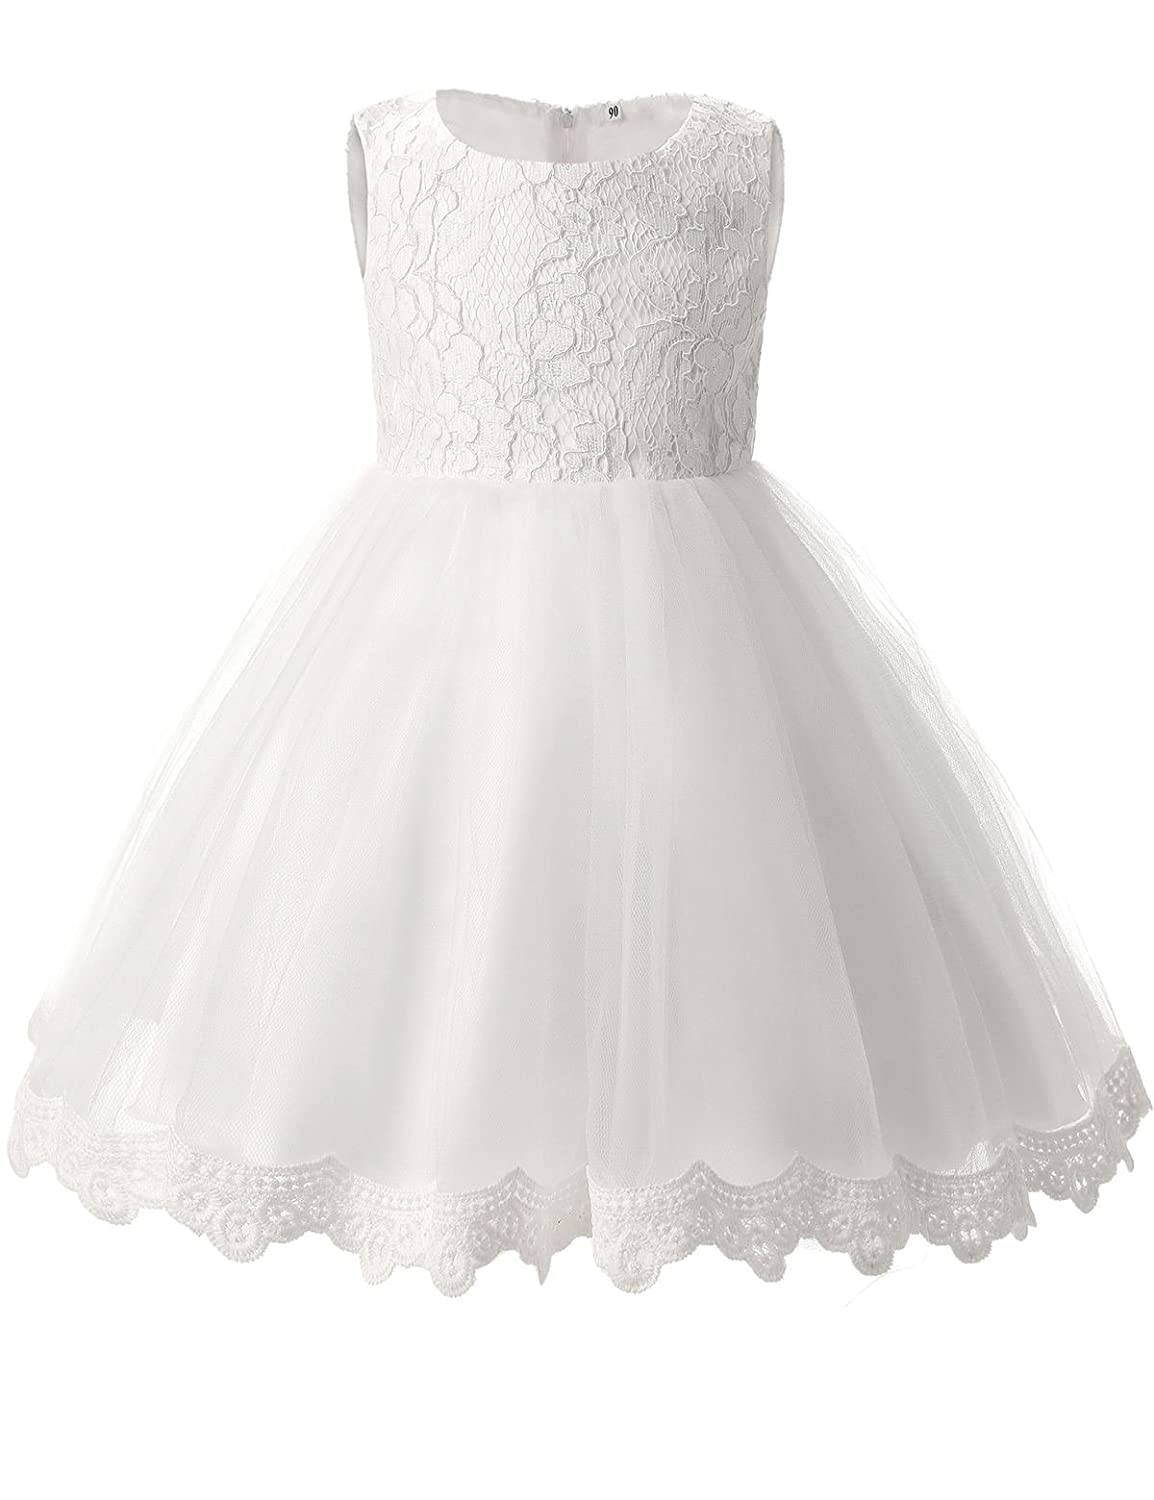 77843c8cc406 Amazon.com  TTYAOVO Girls Lace Tulle Flower Princess Party Toddler ...